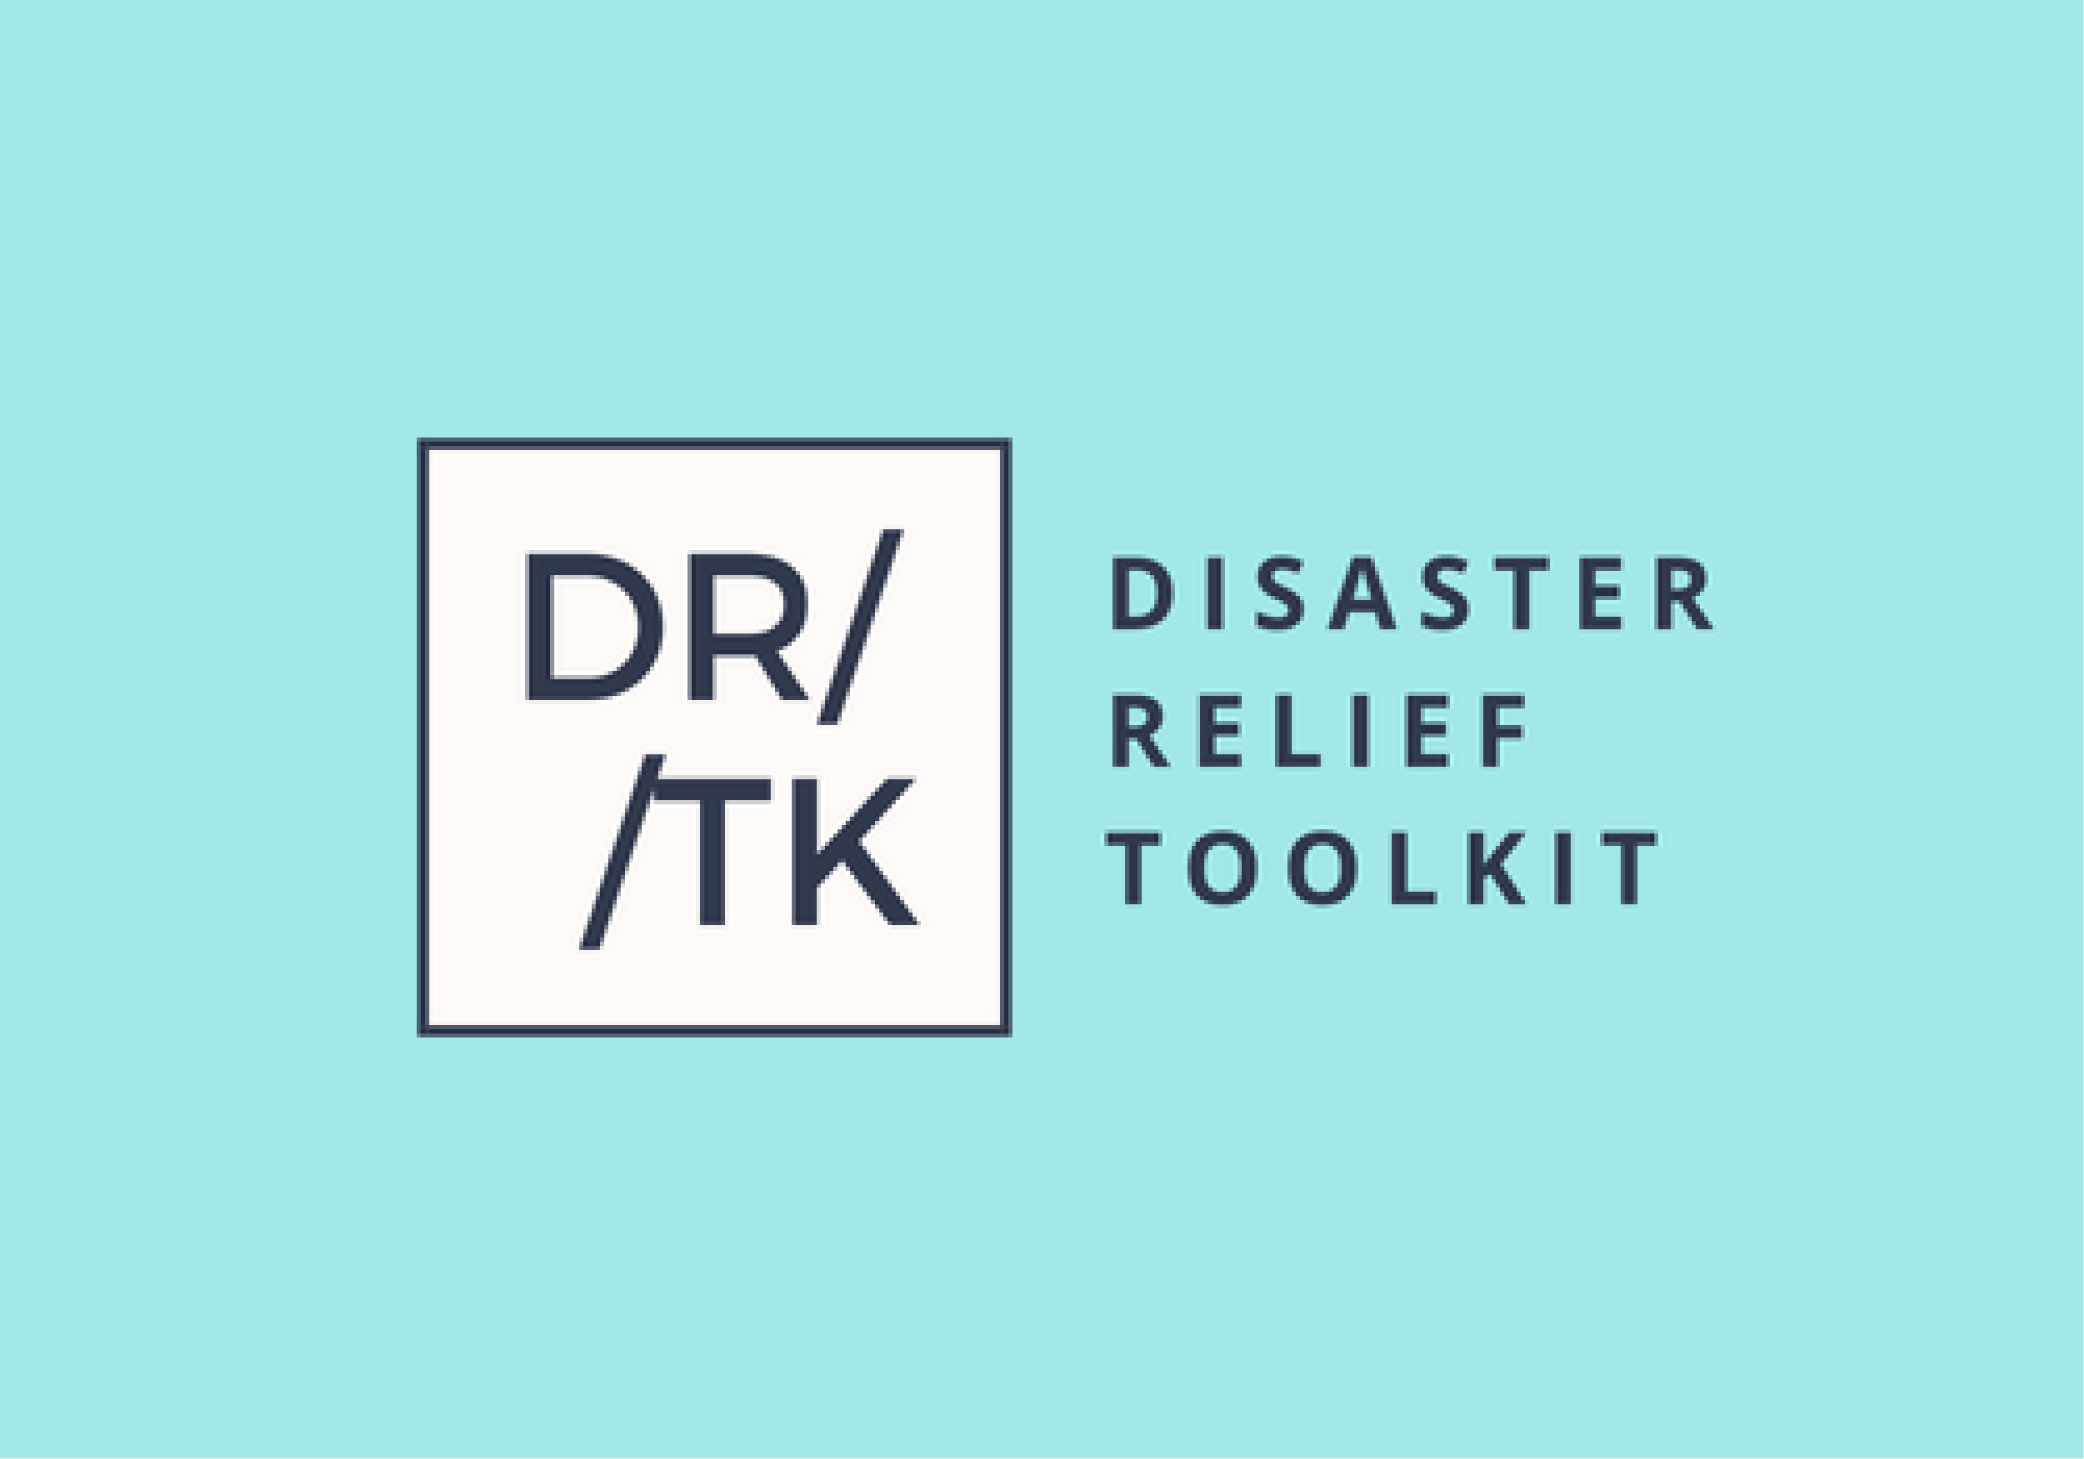 disaster relief toolkit